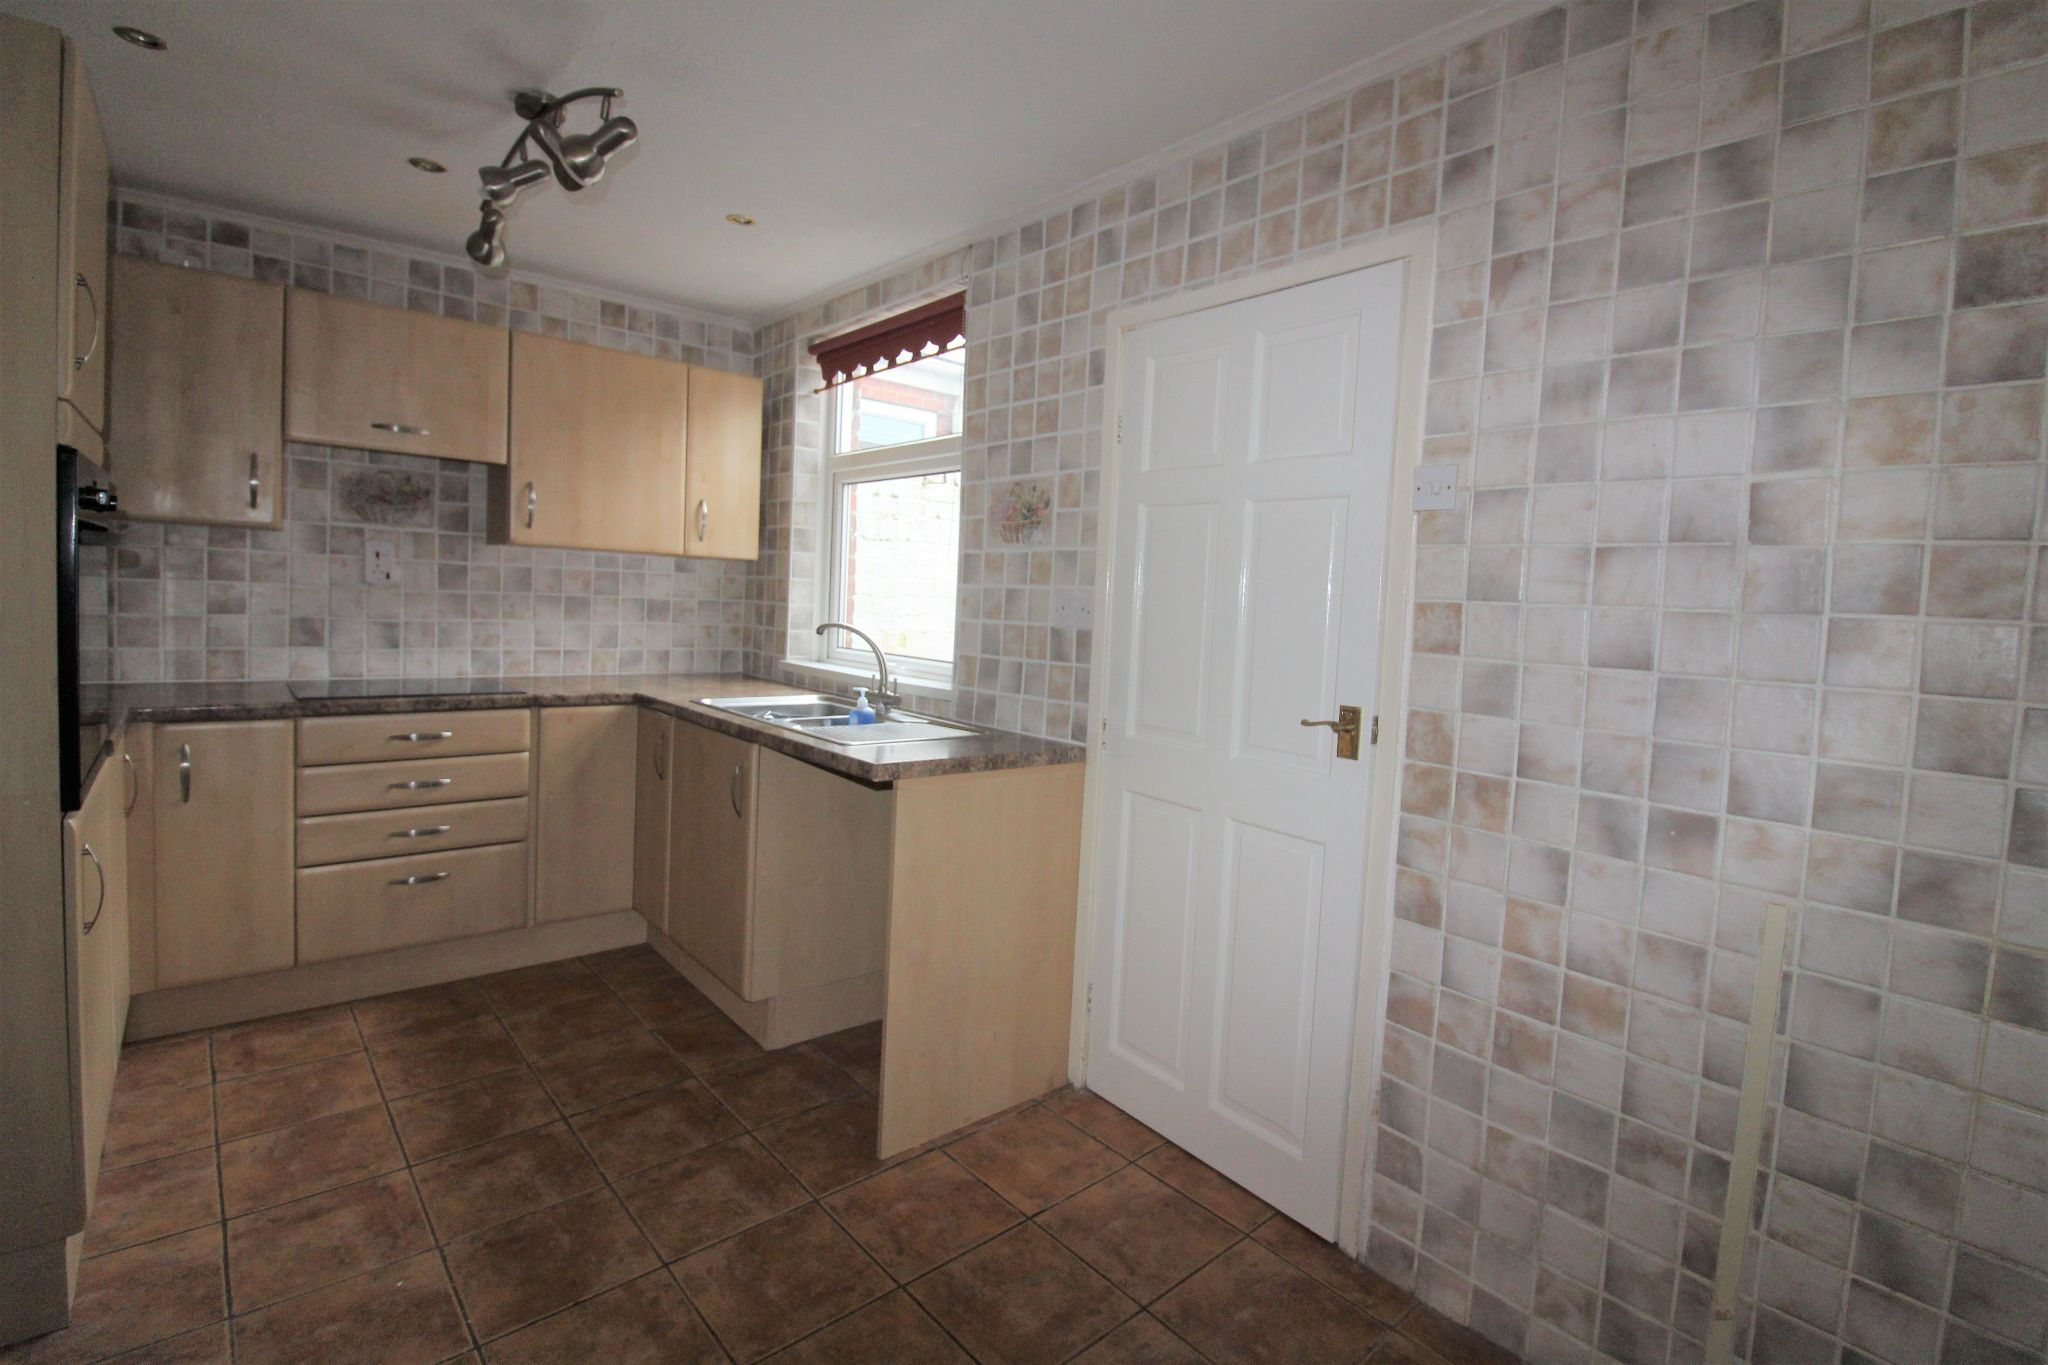 3 bedroom end terraced house For Sale in Willington And Hunwick - Photograph 38.